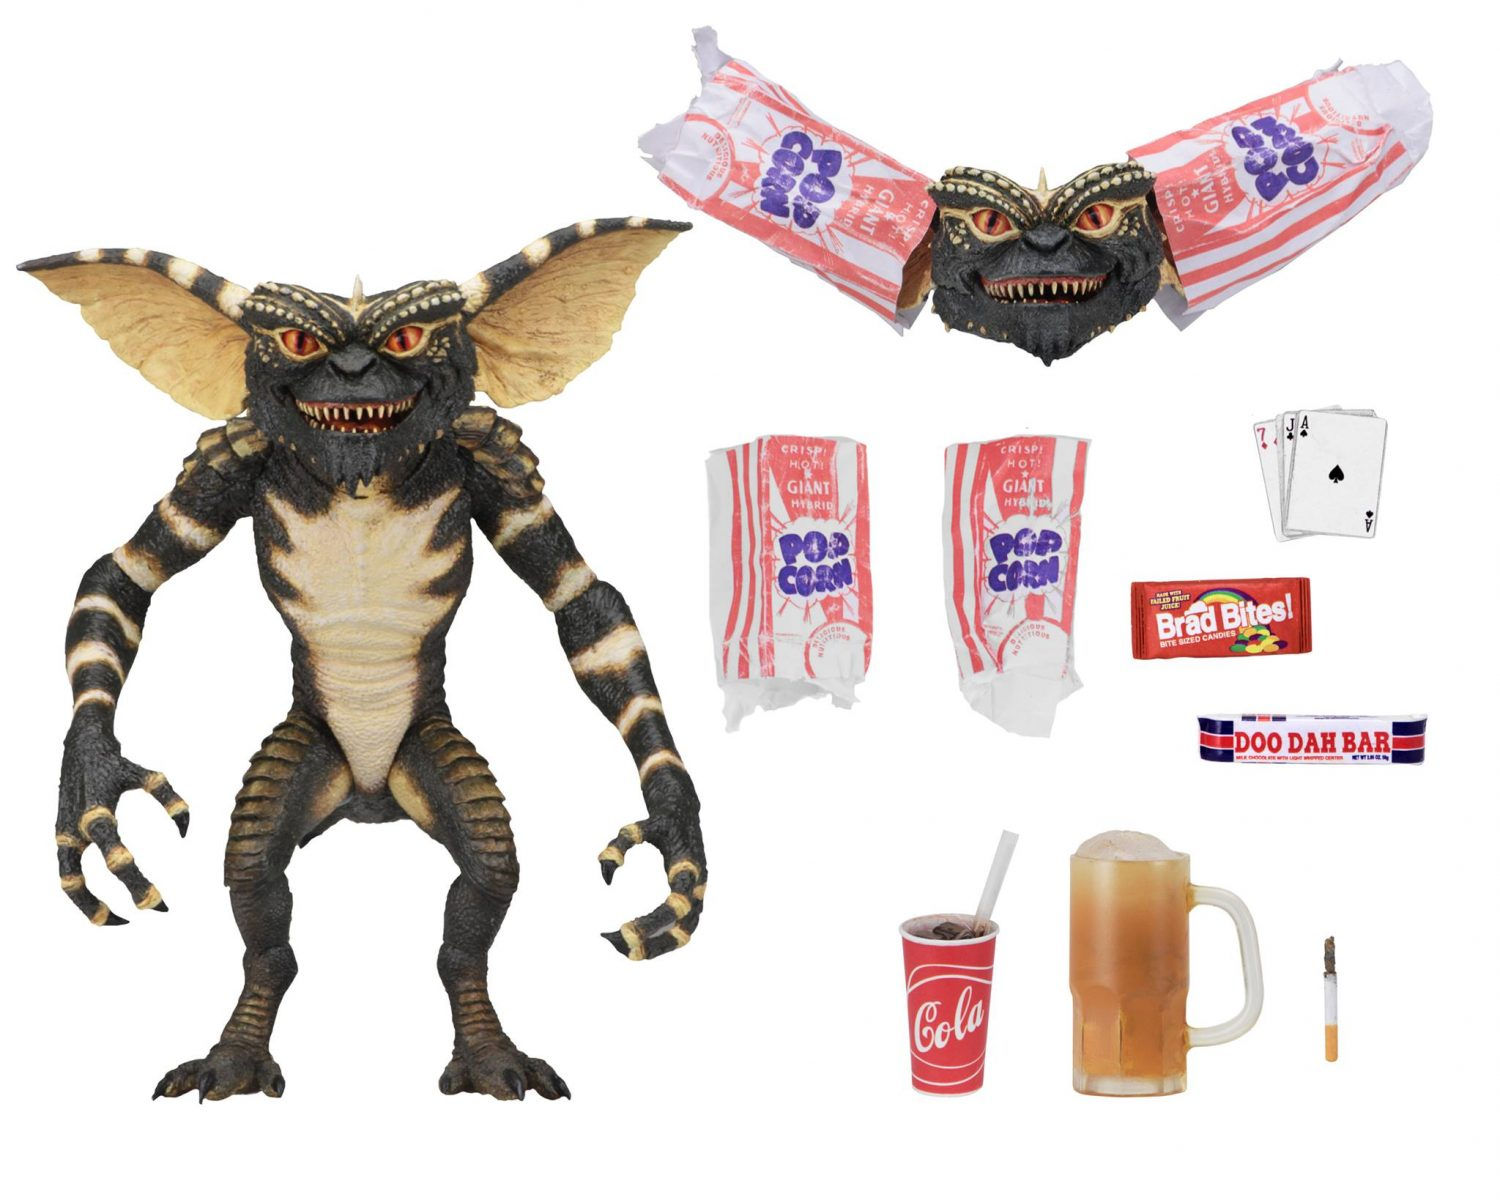 NECA Toys Gremlins – 7″ Scale Ultimate Gremlin Figure Available Now